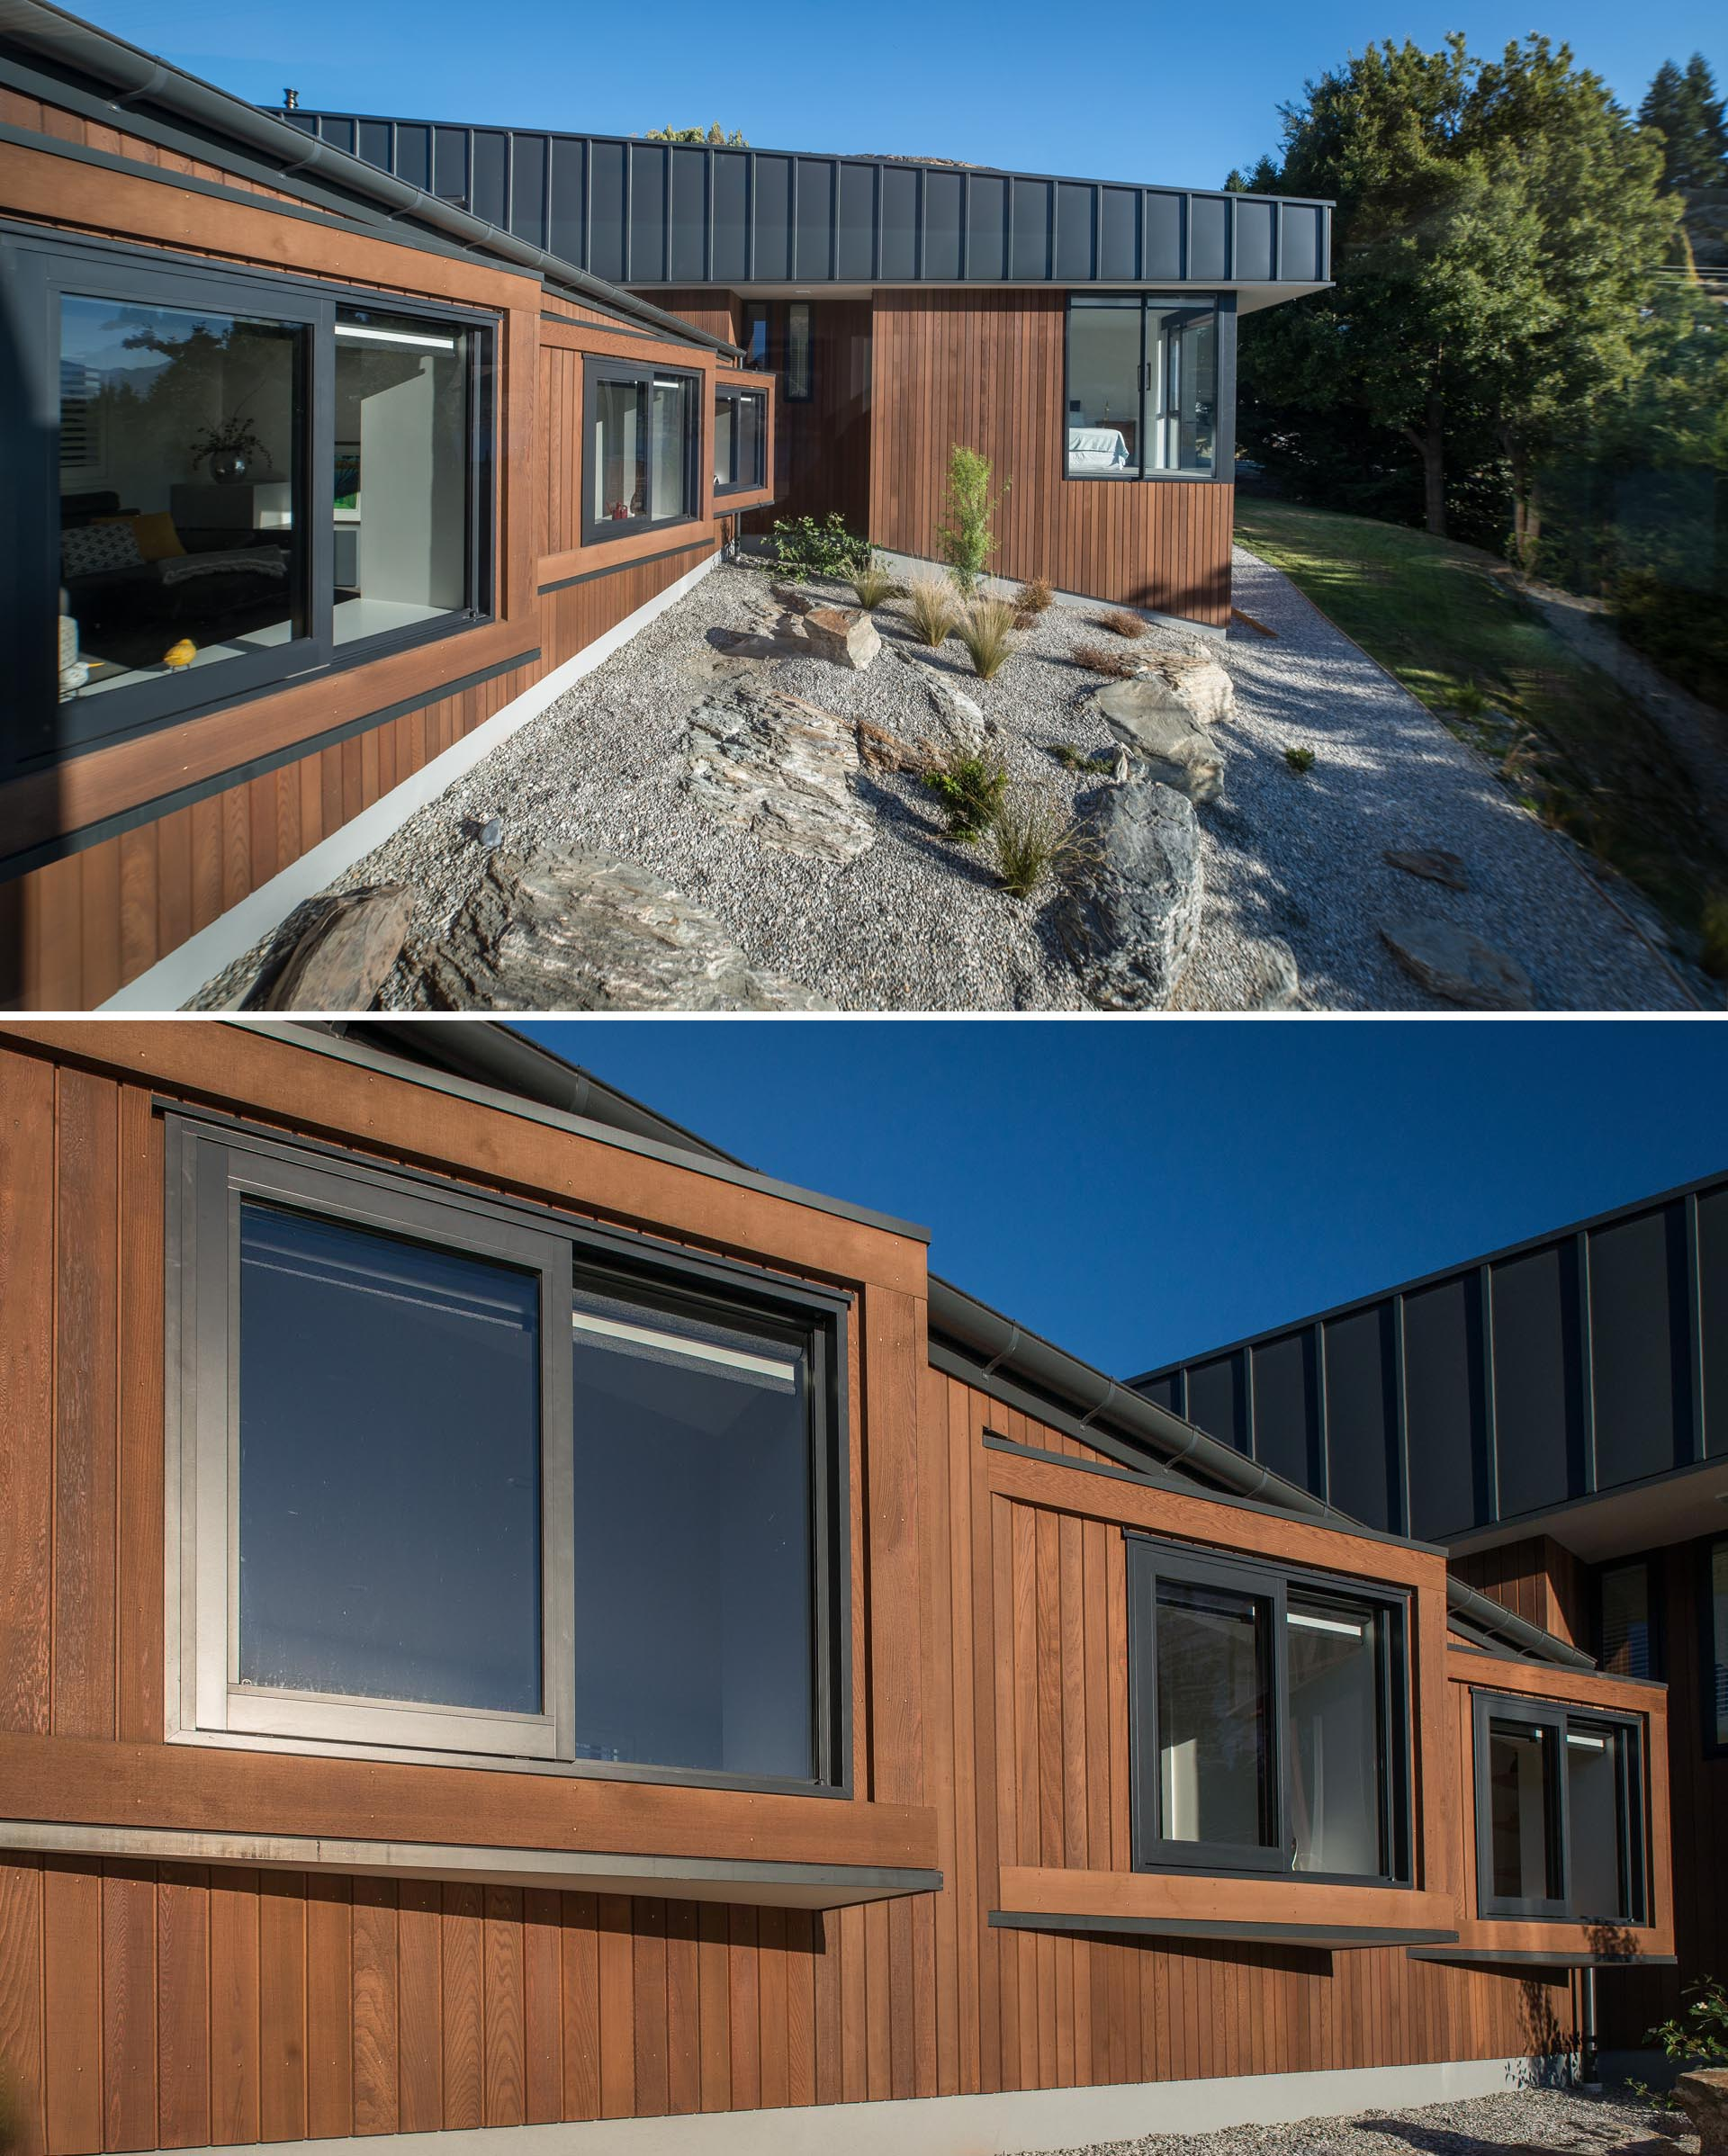 A modern house with wood and matte black metal siding, and angled windows.